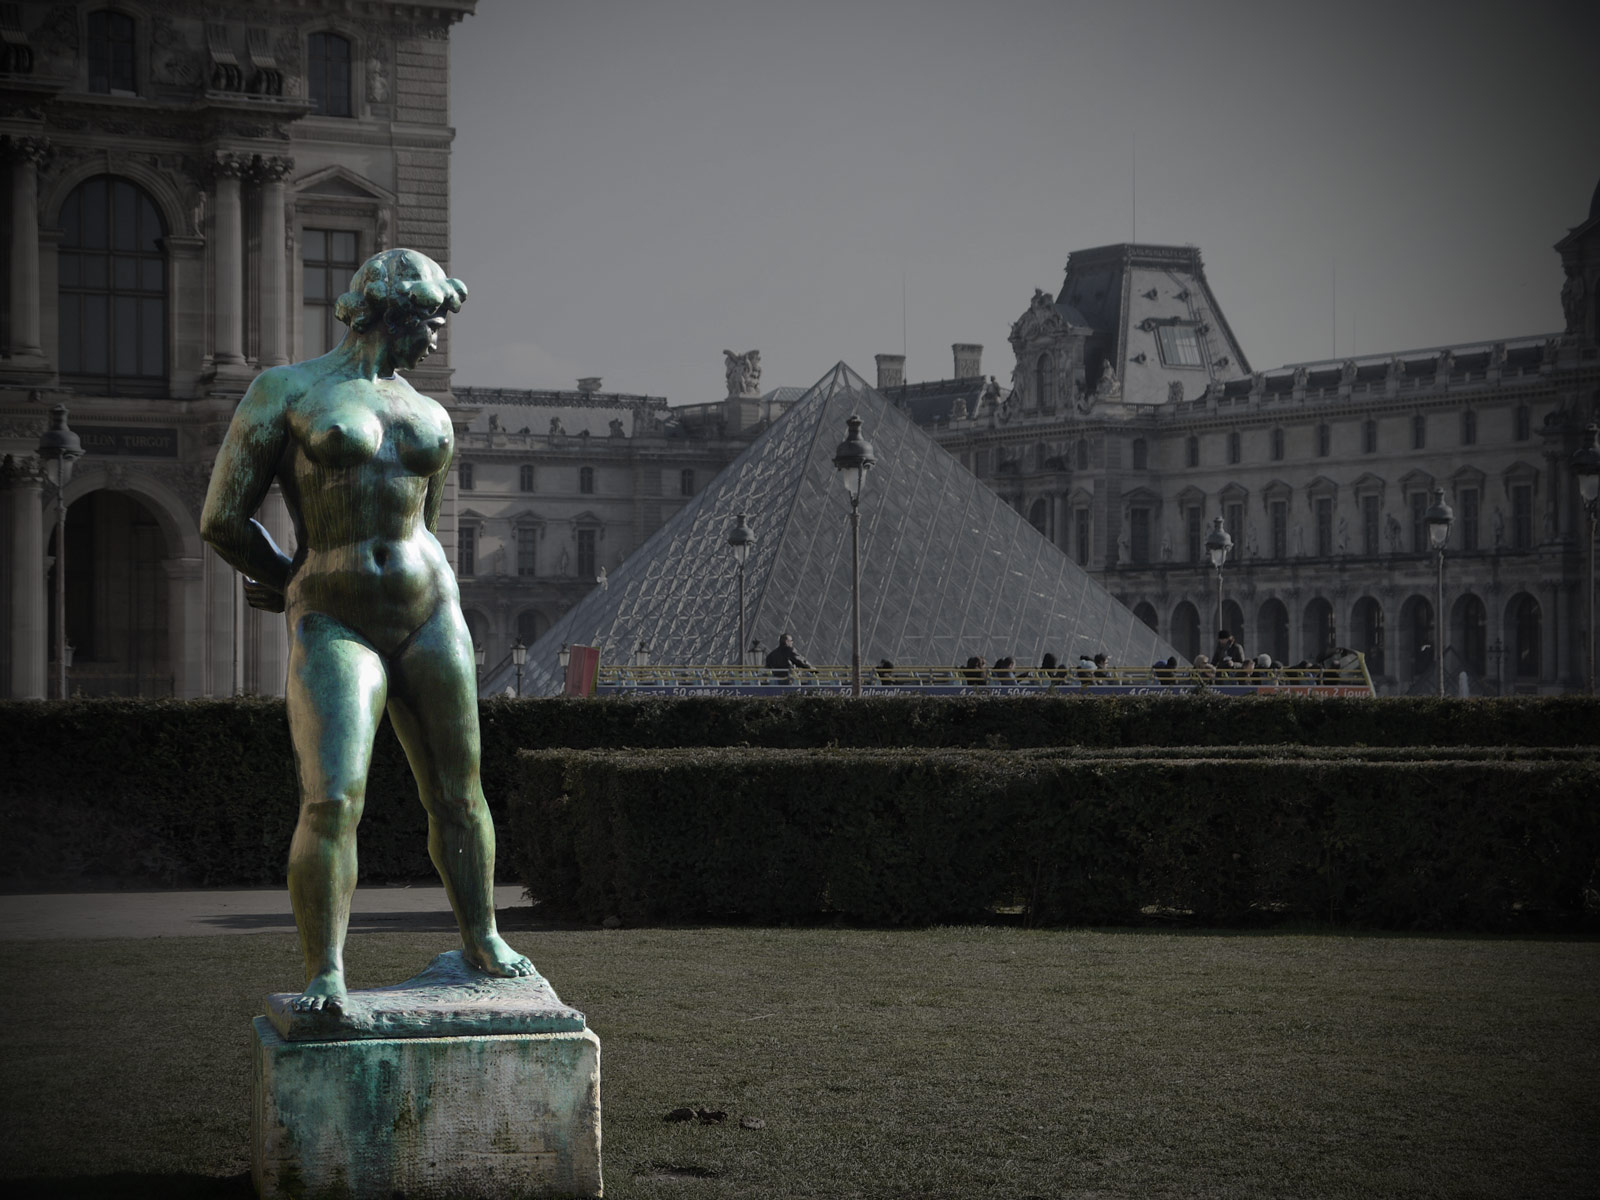 A Naked Lady Admiring the Louvre - Paris, France